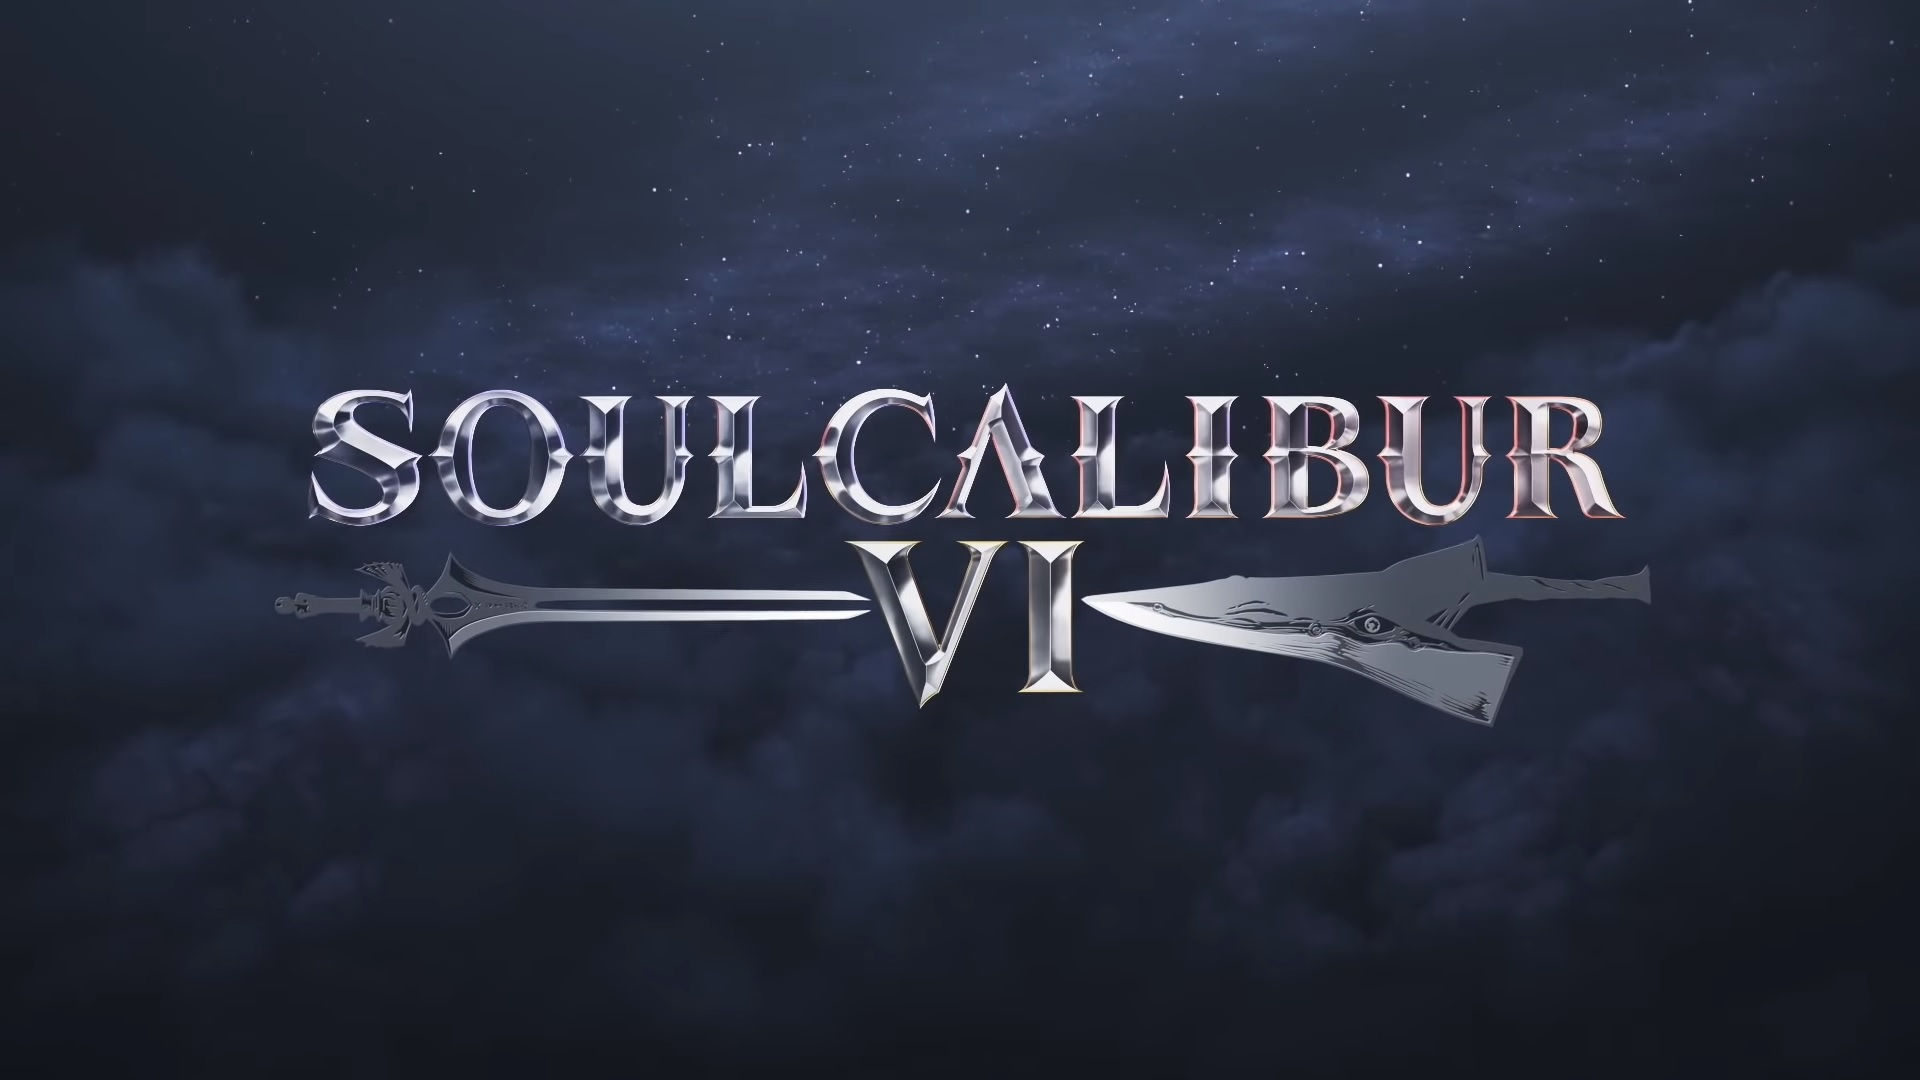 E3 2018: Hands On With Soulcalibur VI